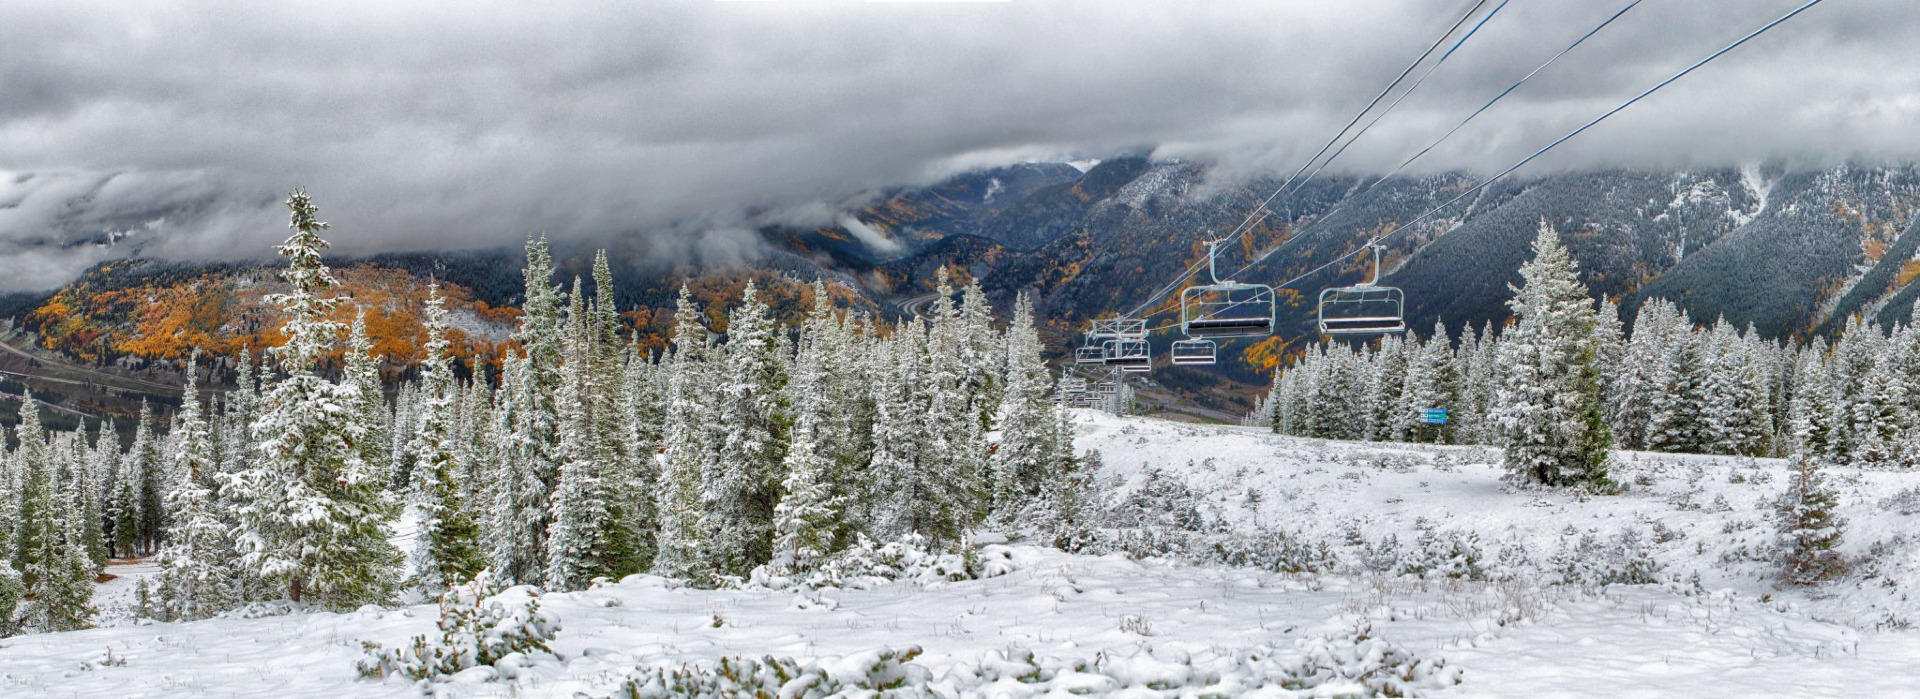 September snowfall at Copper Mountain